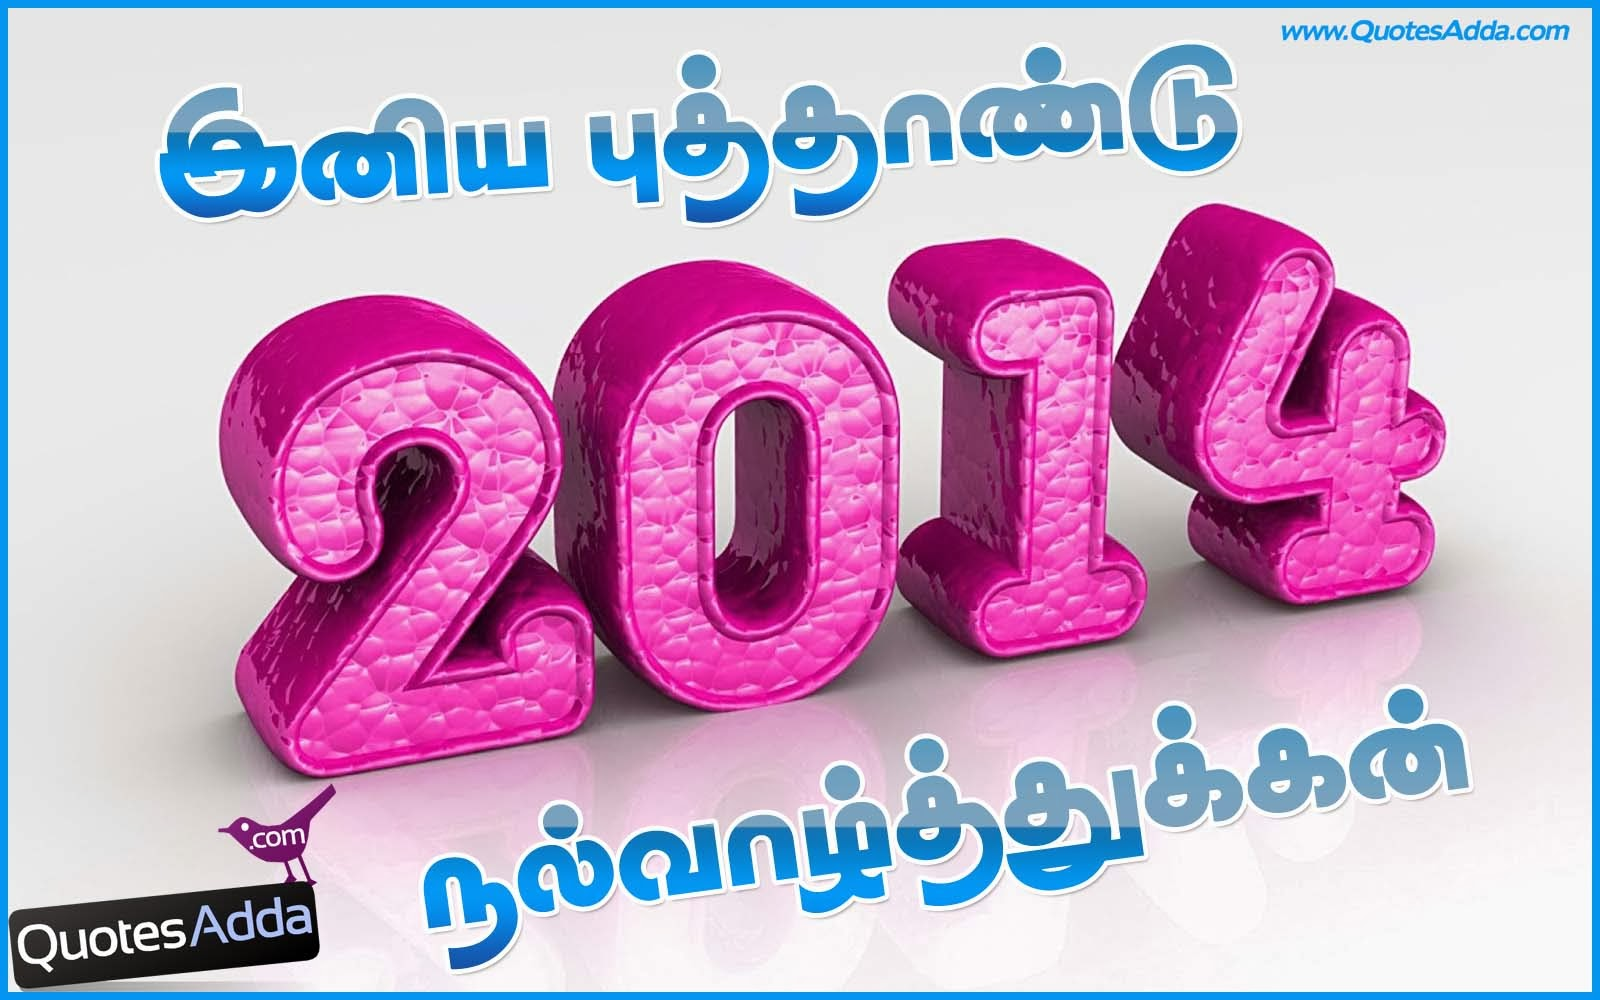 Happy New Year 2014 Tamil Kavithai  2014 Tamil New Year Quotes